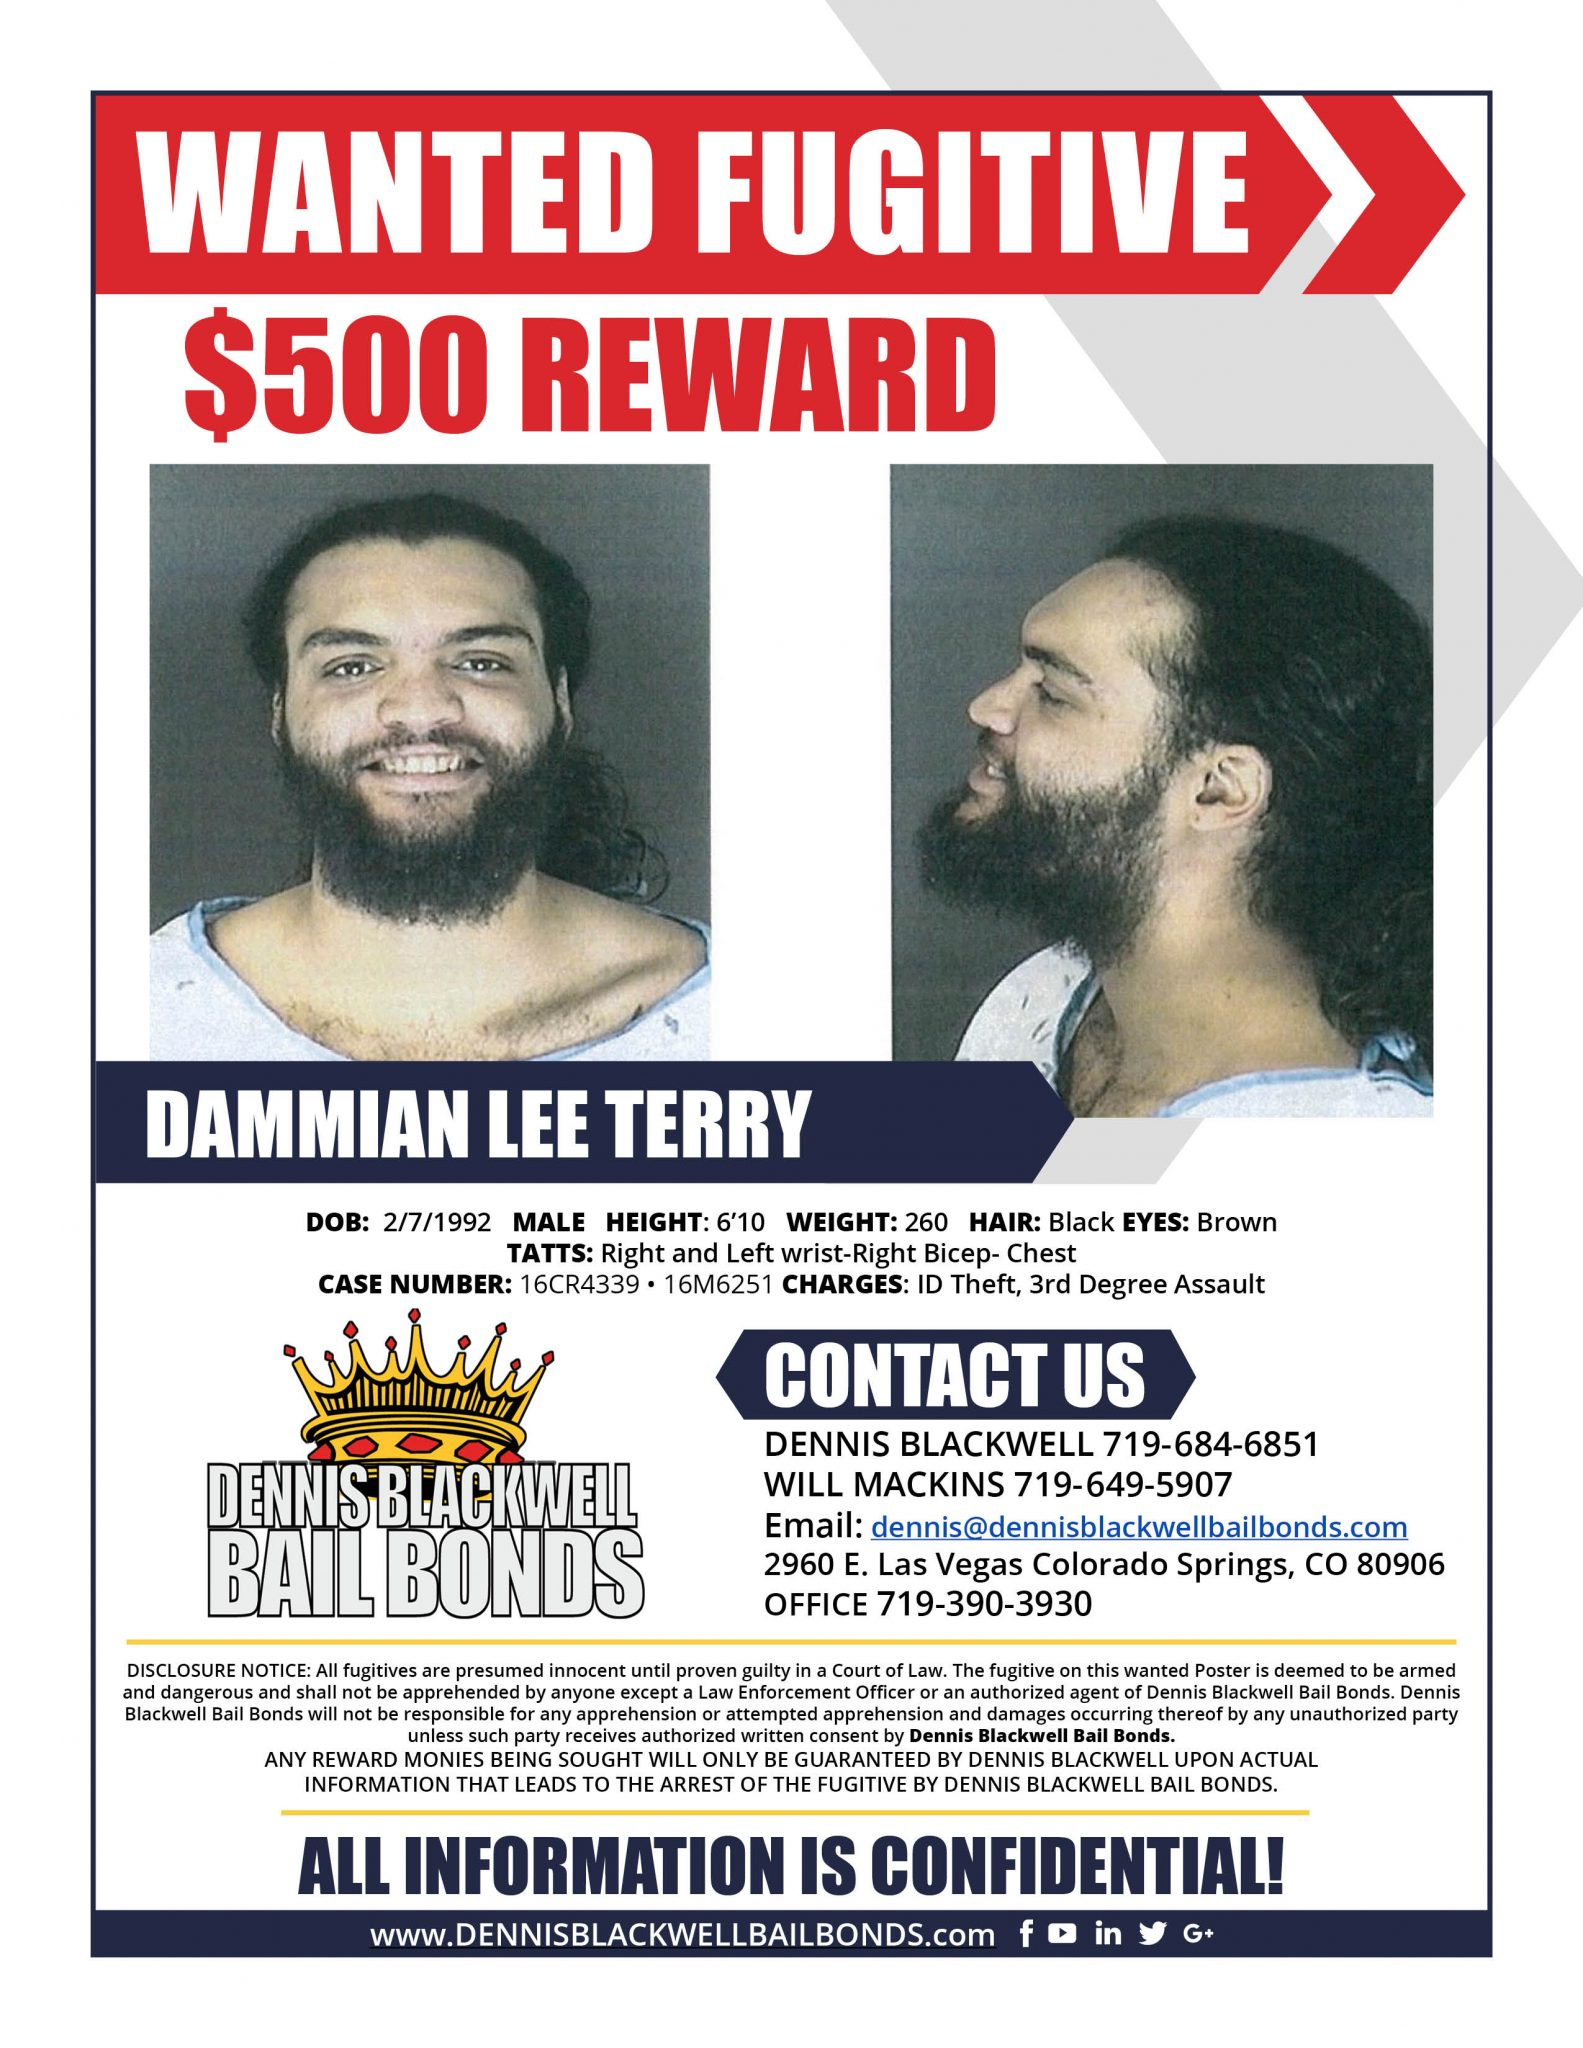 DAMMIAN LEE TERRY-WANTED-FUGITIVE